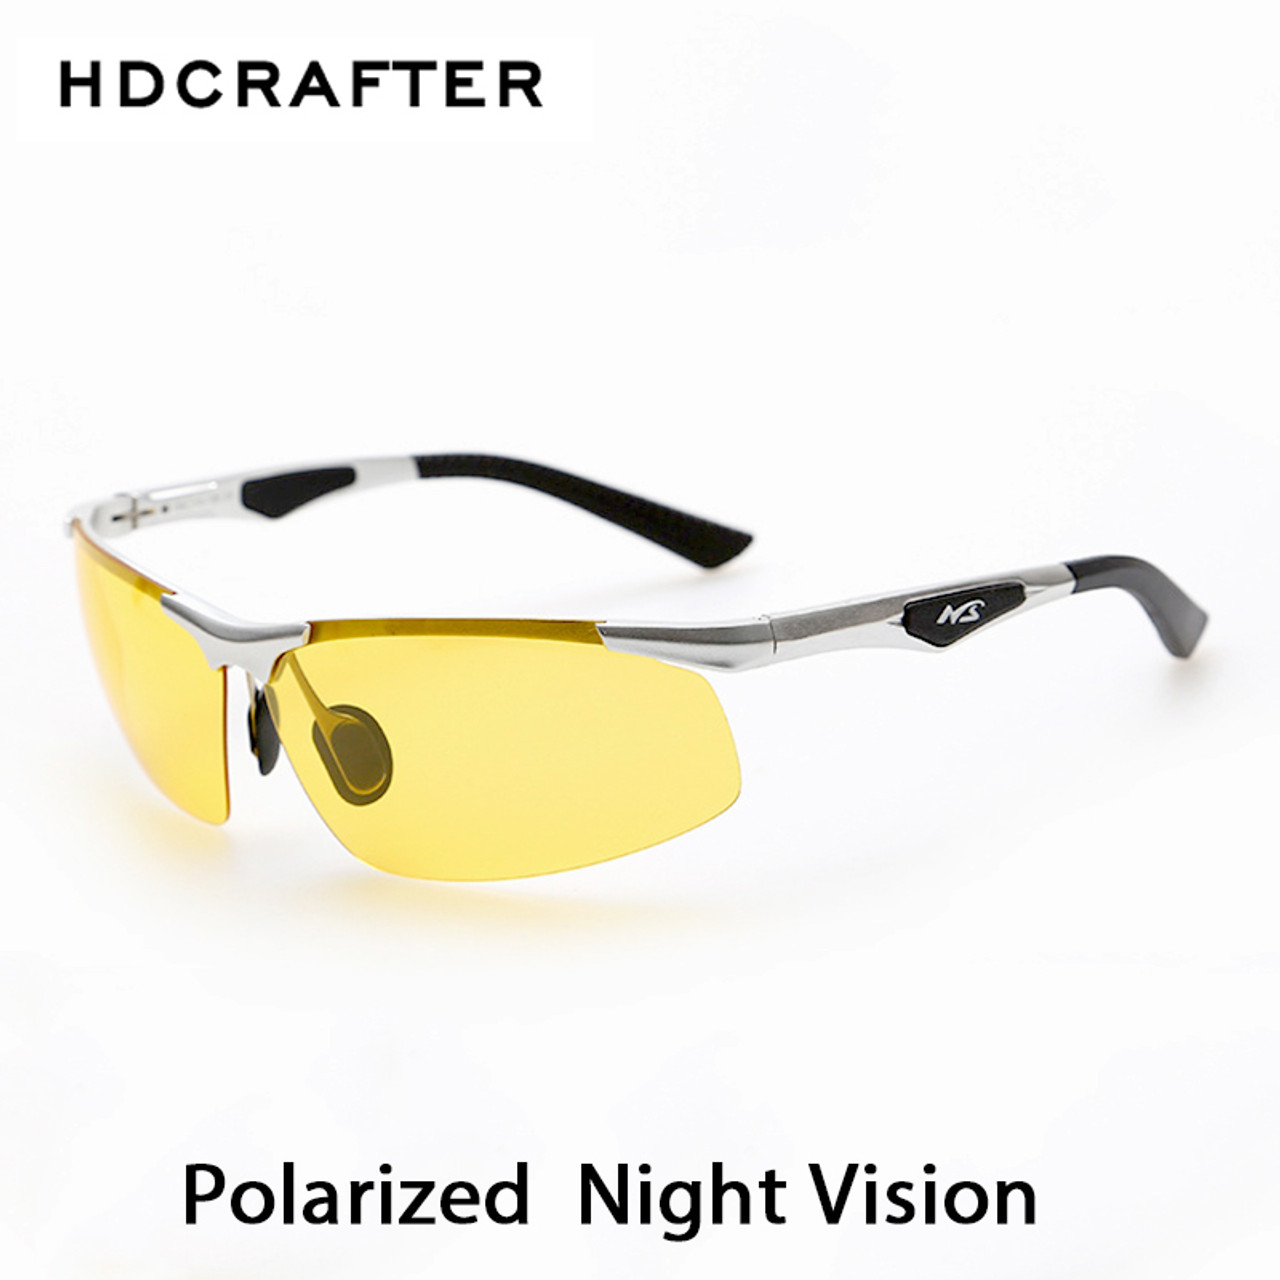 4c21b8dd874 Night Driving New HDCRAFTER Anti-Glare Goggles Eyeglasses Polarized Driving  Sunglasses Yellow Lens Night Vision ...